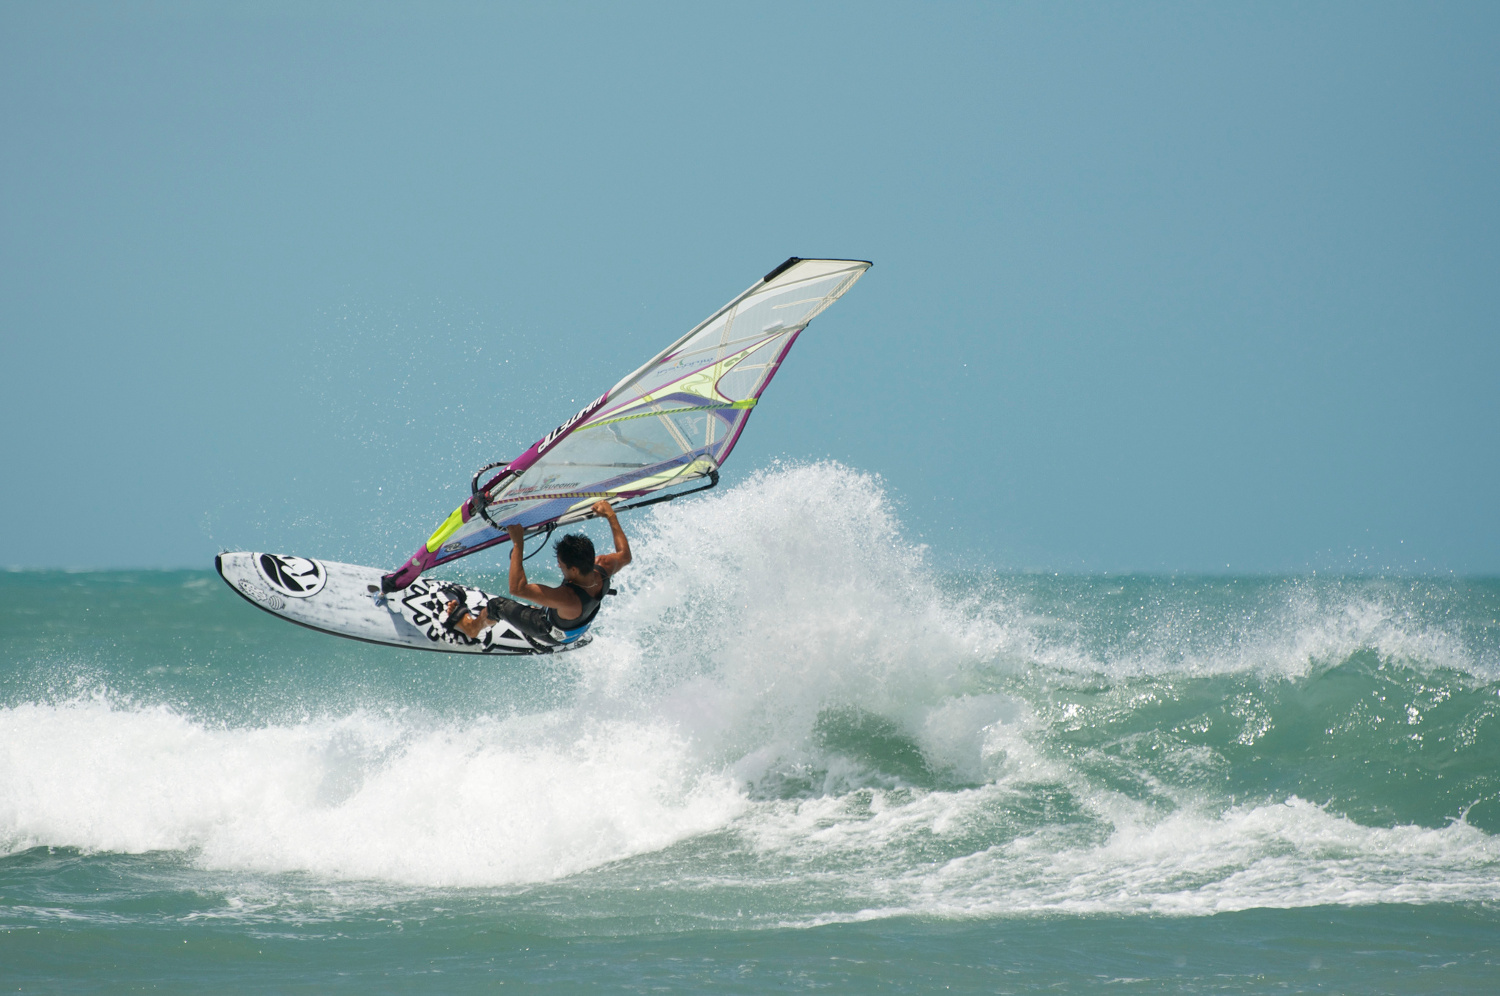 WINDSURFE: Jericoacoara (foto: Winniepix/Flickr-Creative Commons)